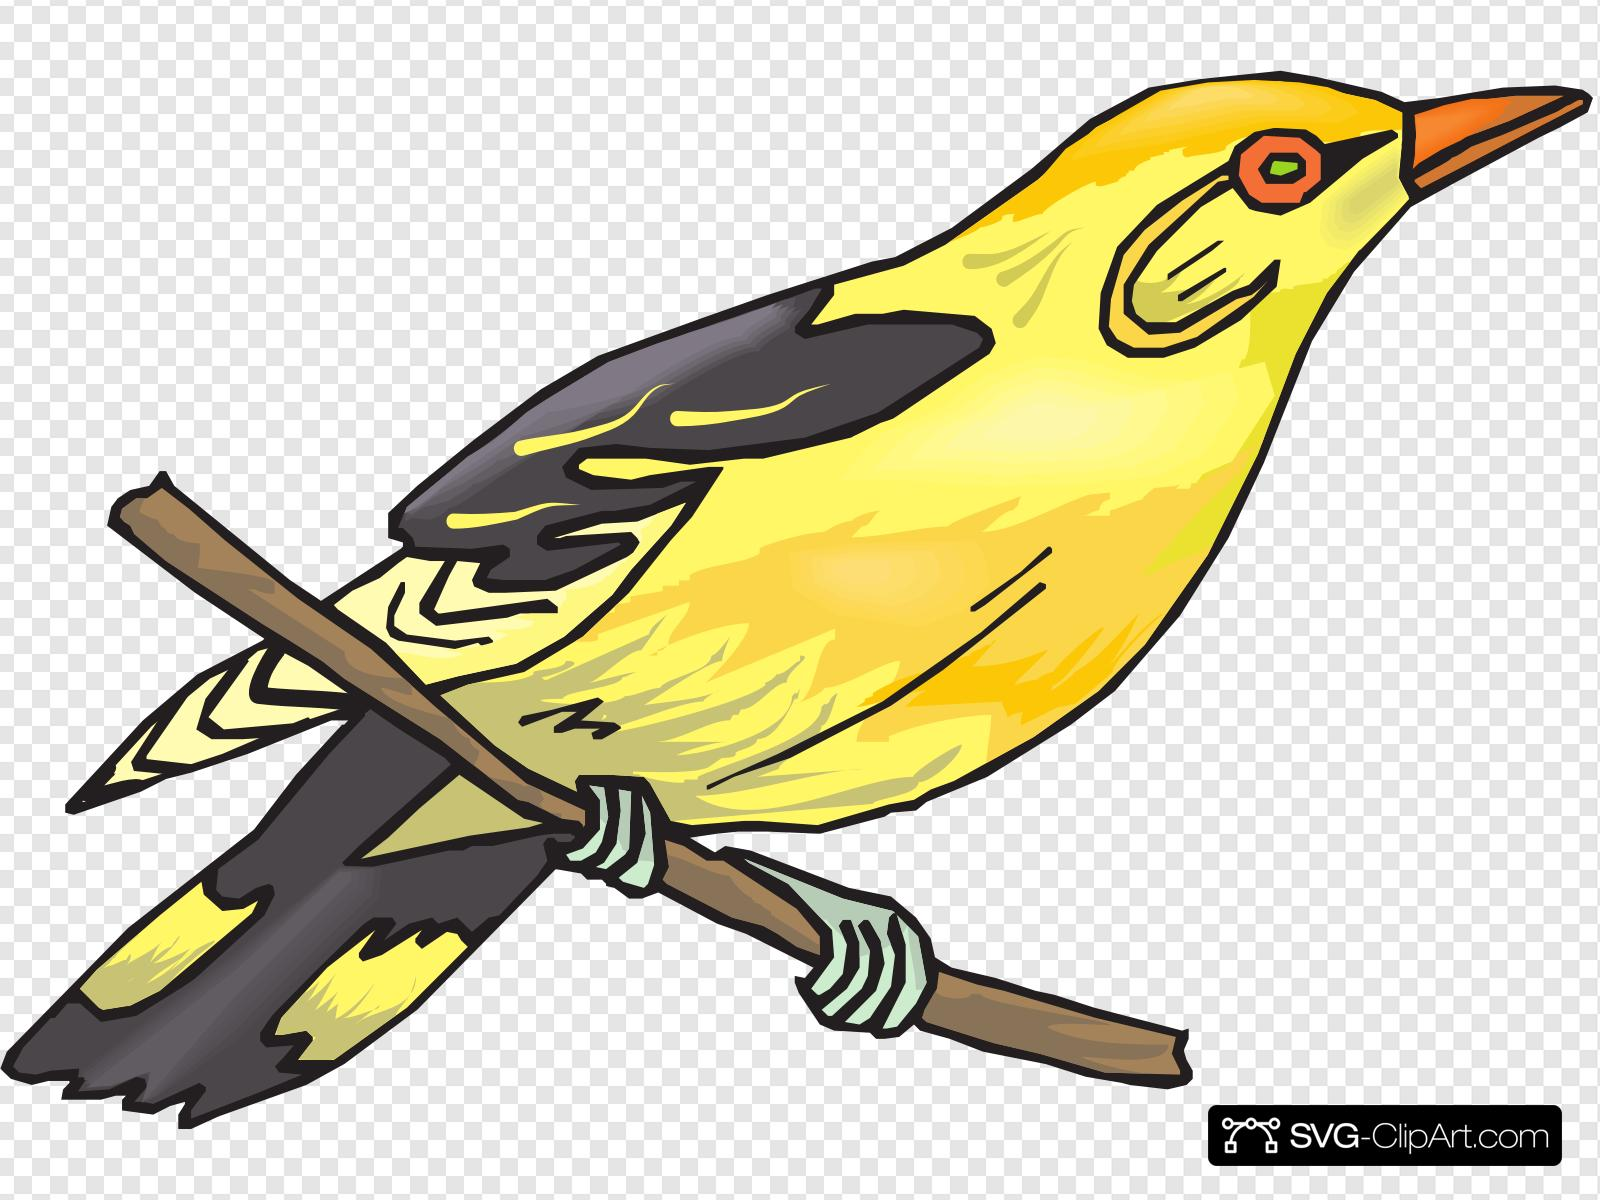 Perched clipart banner black and white library Perched Yellow Finch Clip art, Icon and SVG - SVG Clipart banner black and white library